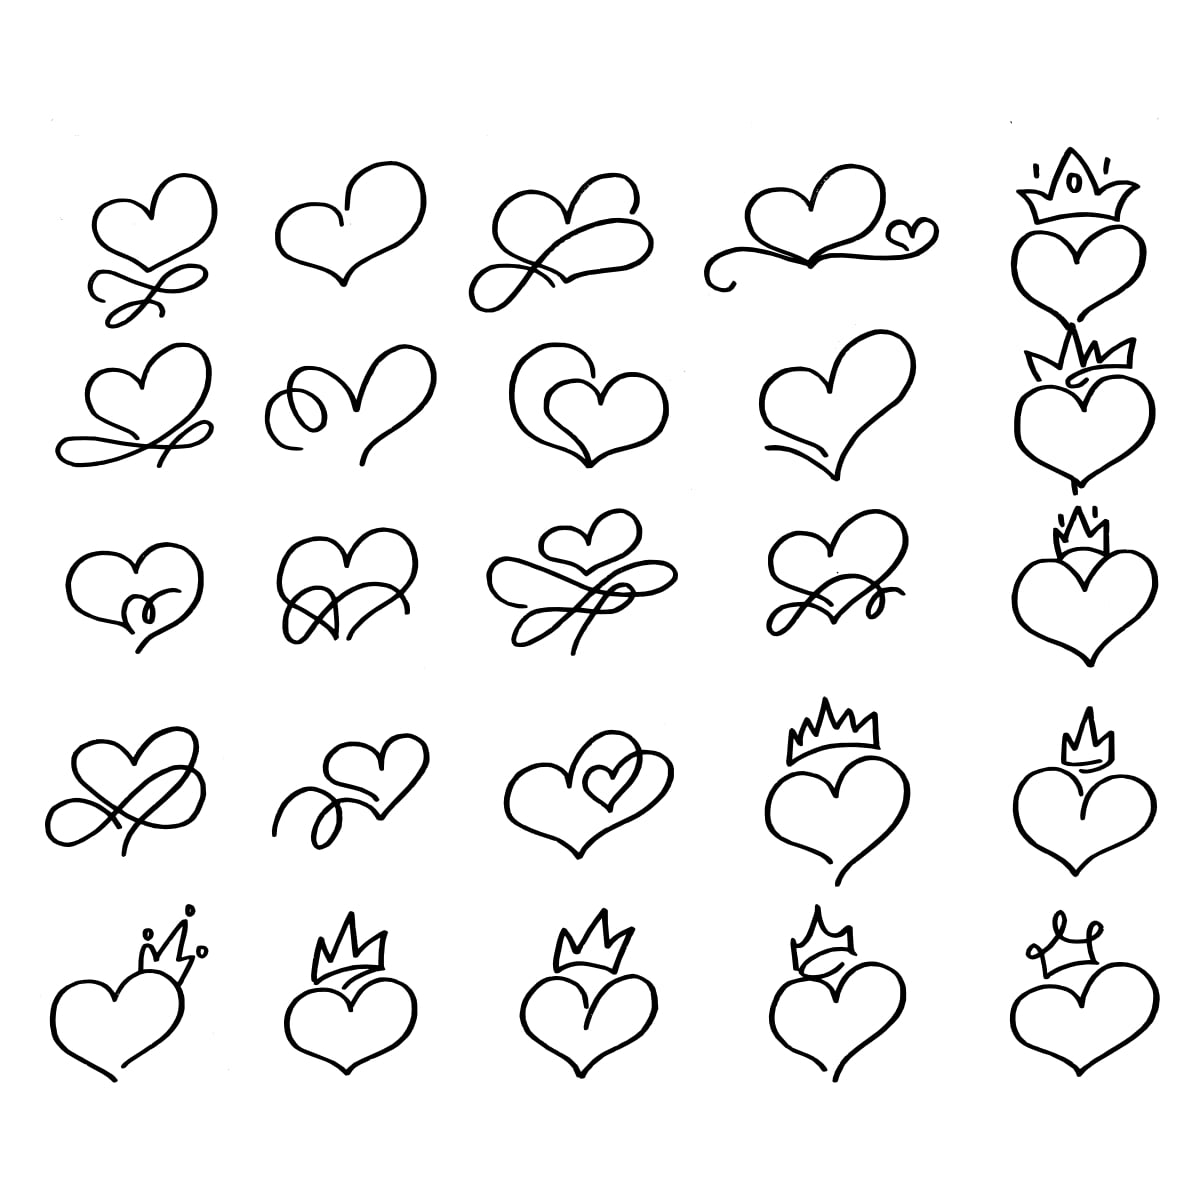 Free Hand drawn crowned hearts. doodle princess, king and queen crown on heart, sketch love crowns